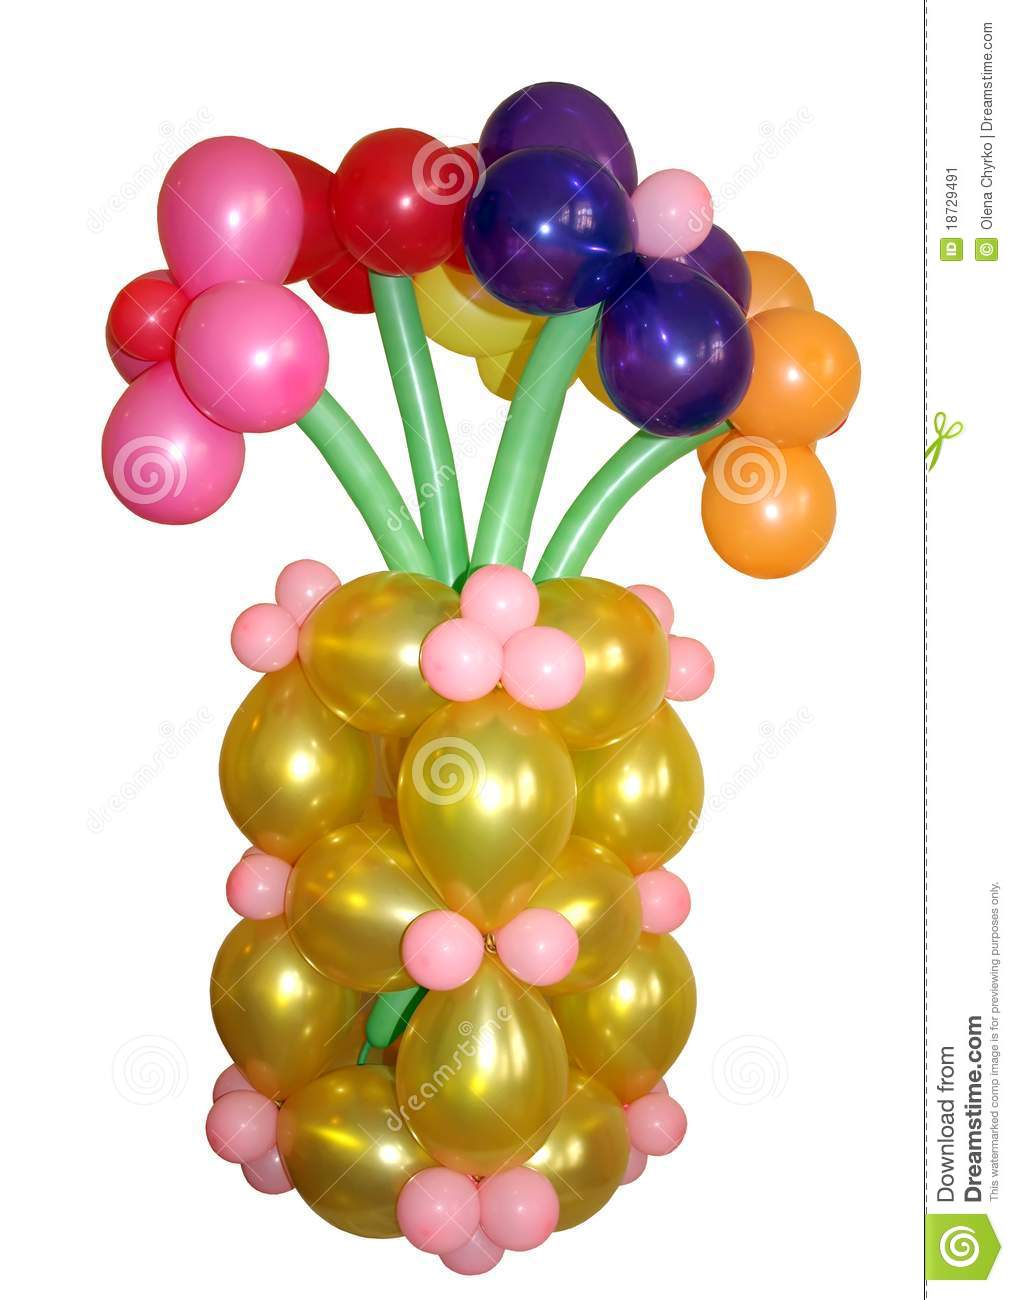 A Bouquet Of Colorful Balloons. Stock Image - Image: 18729491